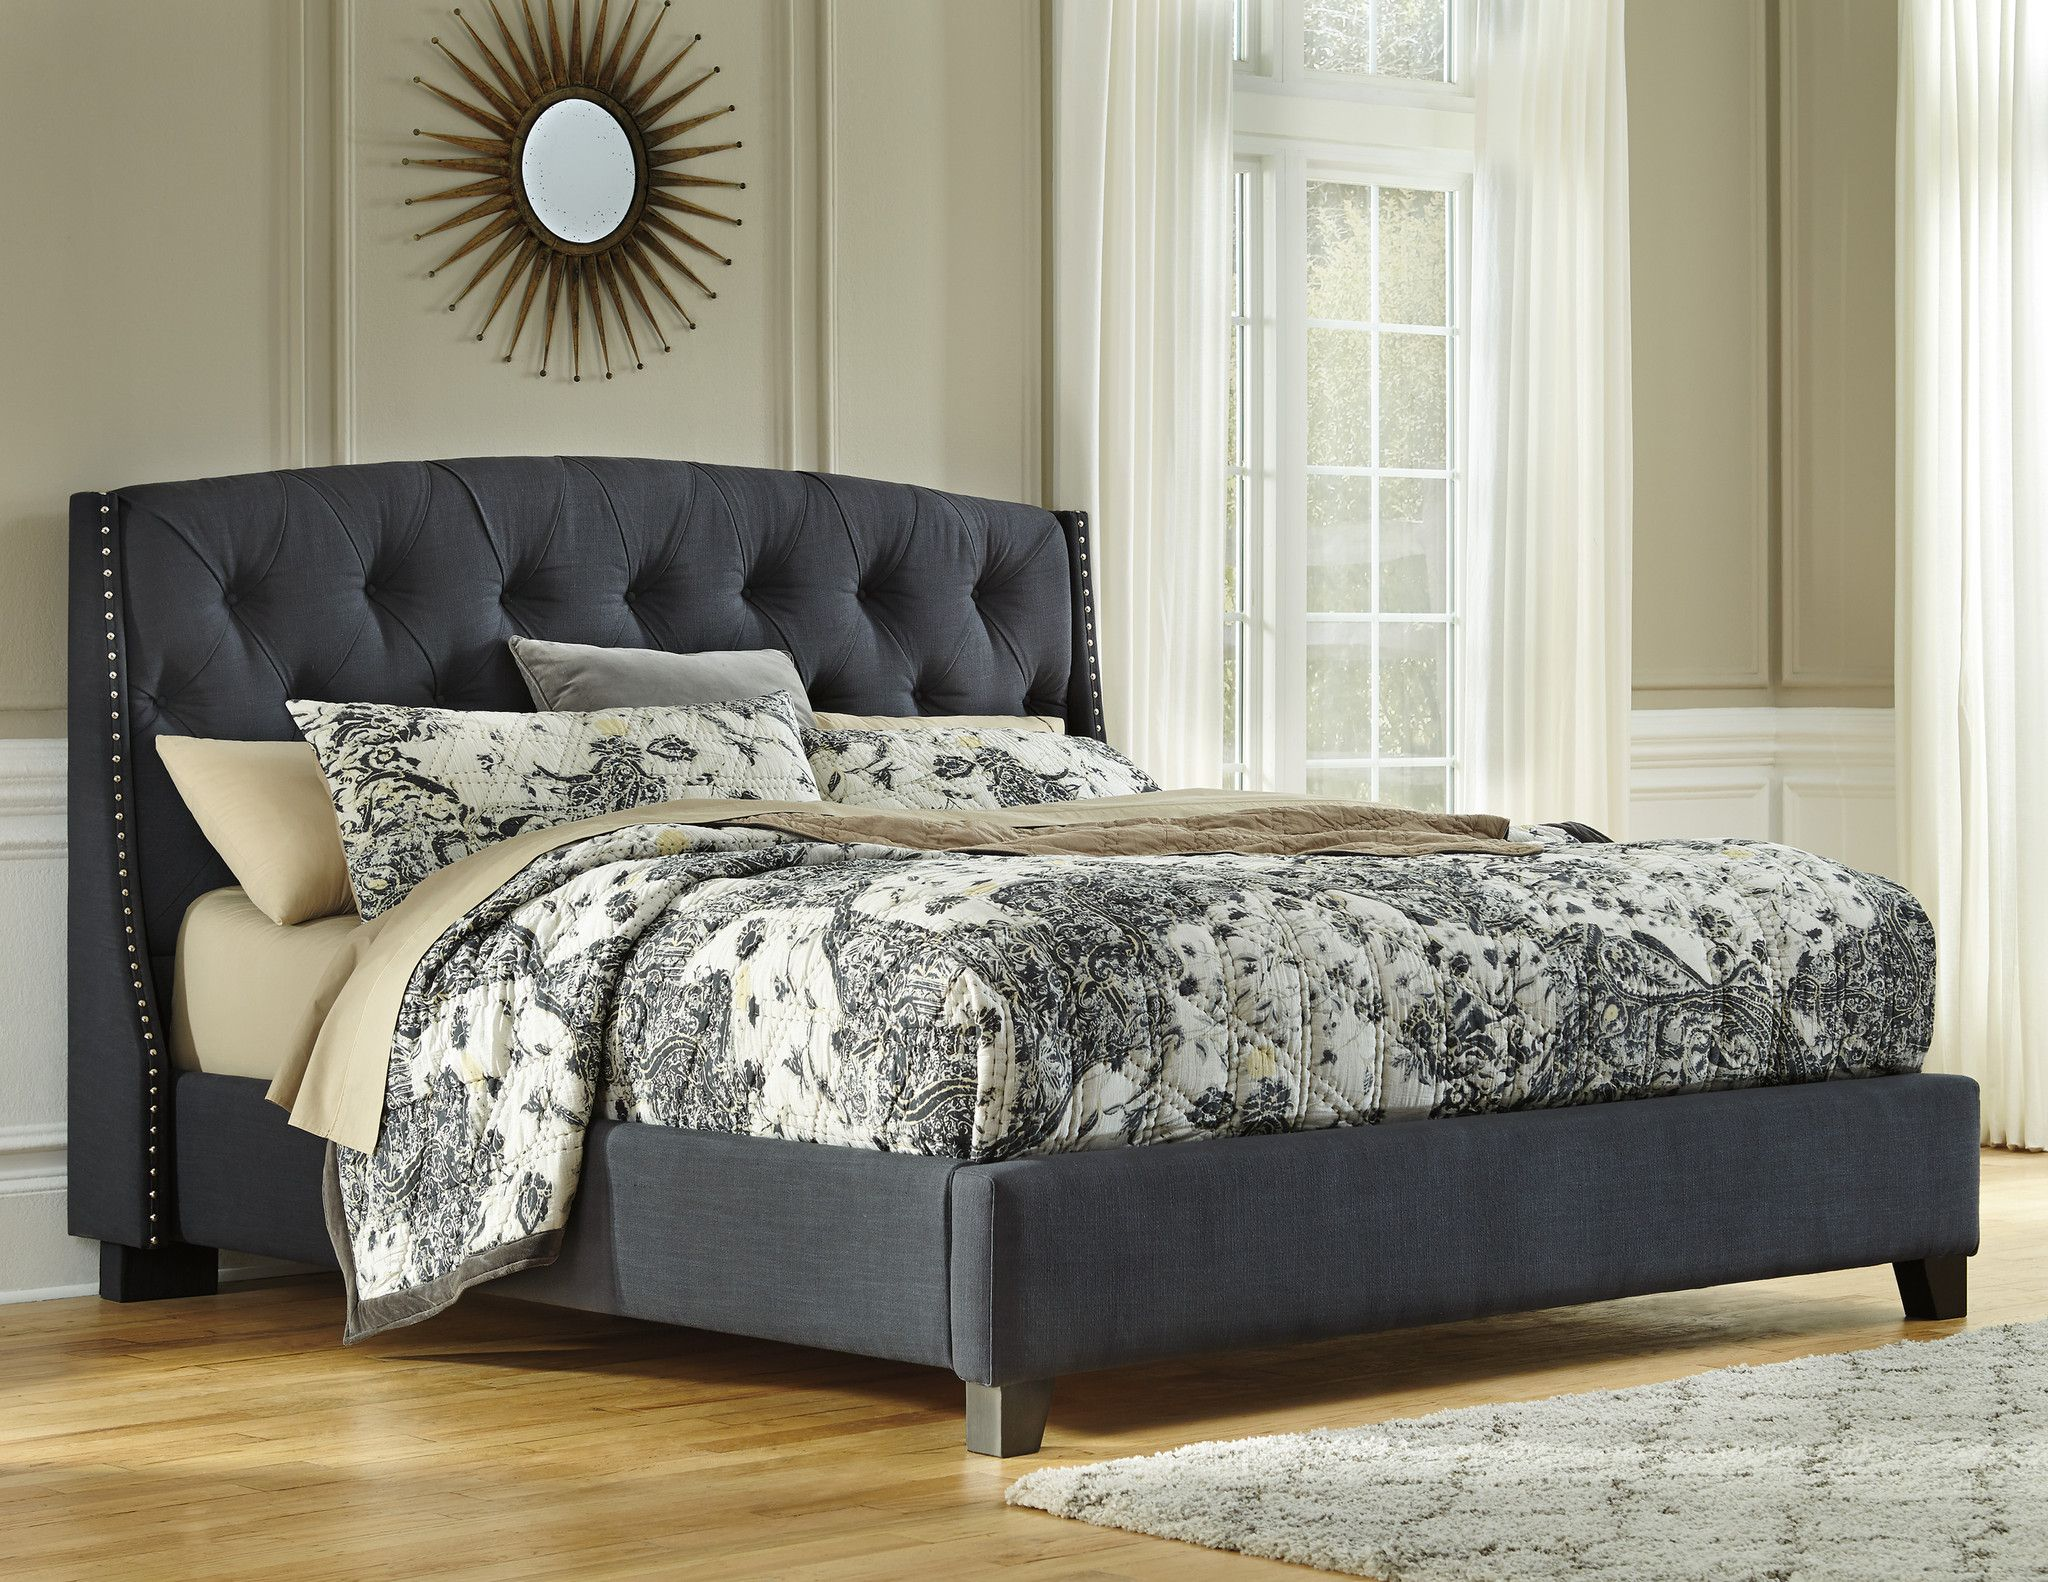 Kasidon Cal King Upholstered Bed By Signature Design By Ashley. Get Your  Kasidon Cal King Upholstered Bed At Mattress And Furniture Super Center, Tampa  FL ...